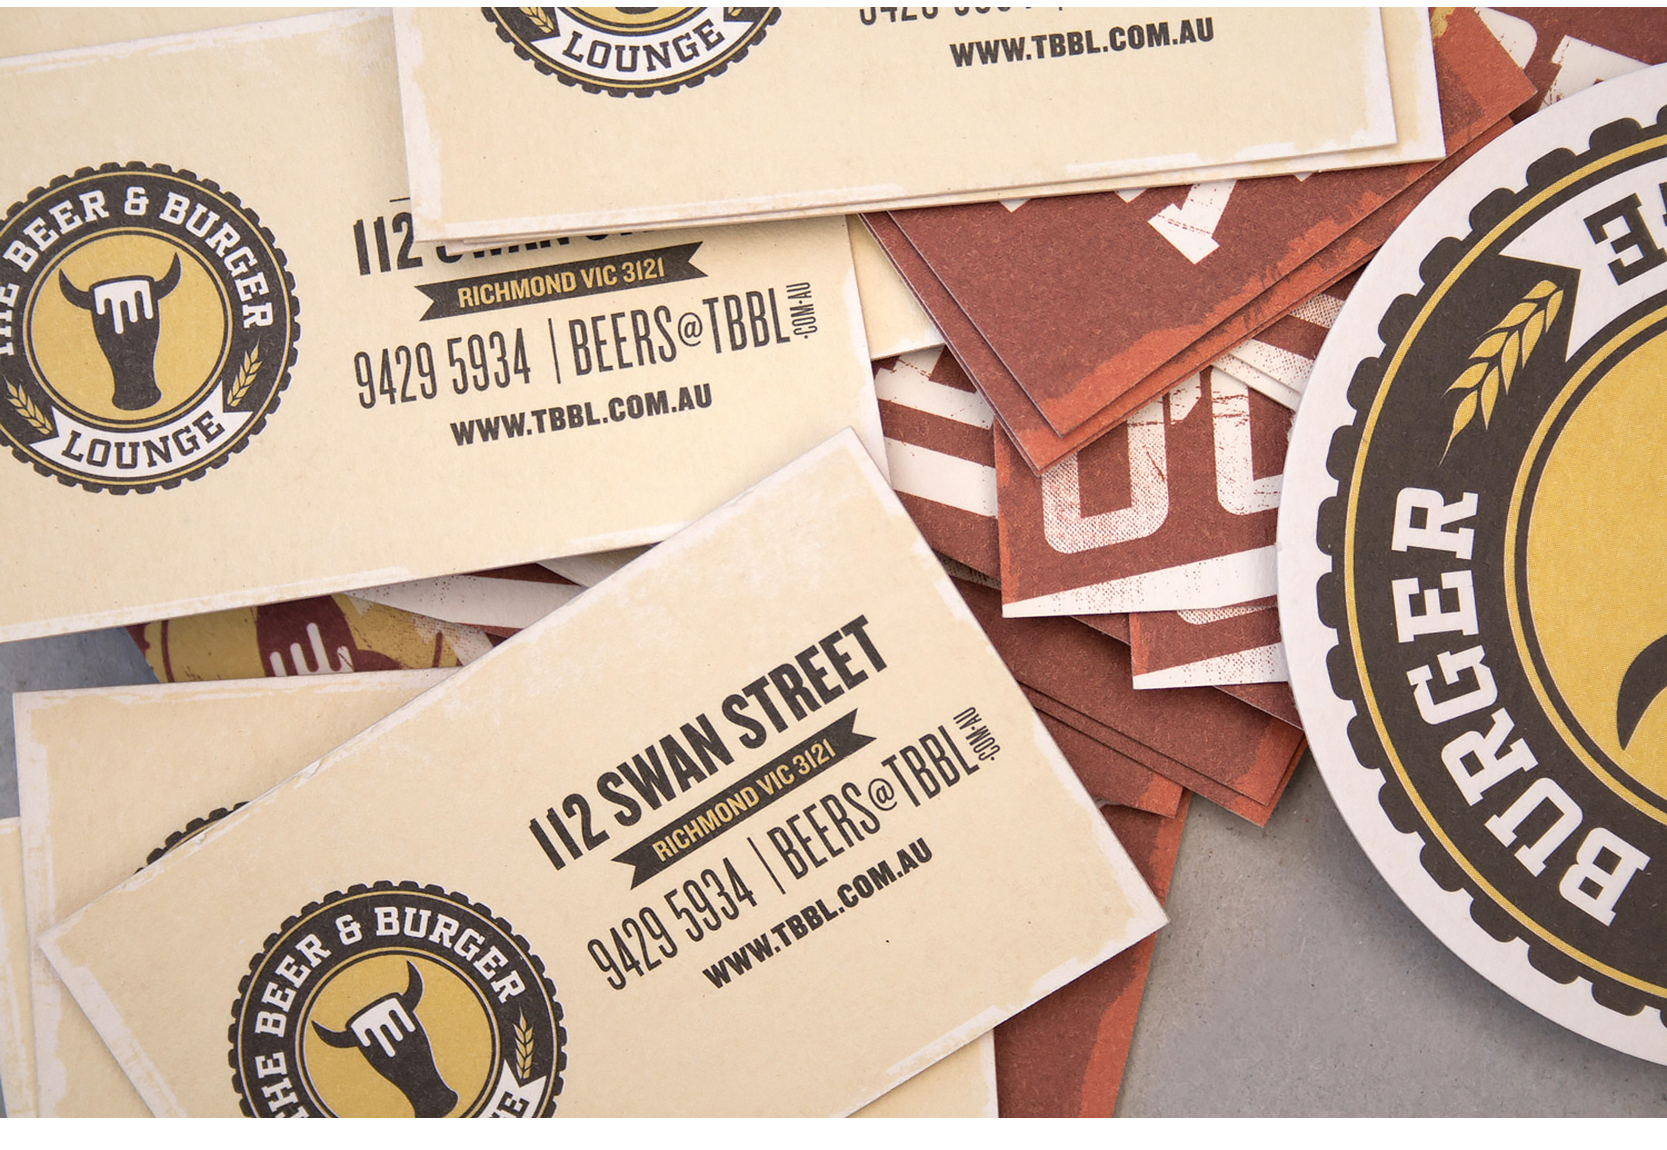 The Beer and burger lounge richmond branding and logo design